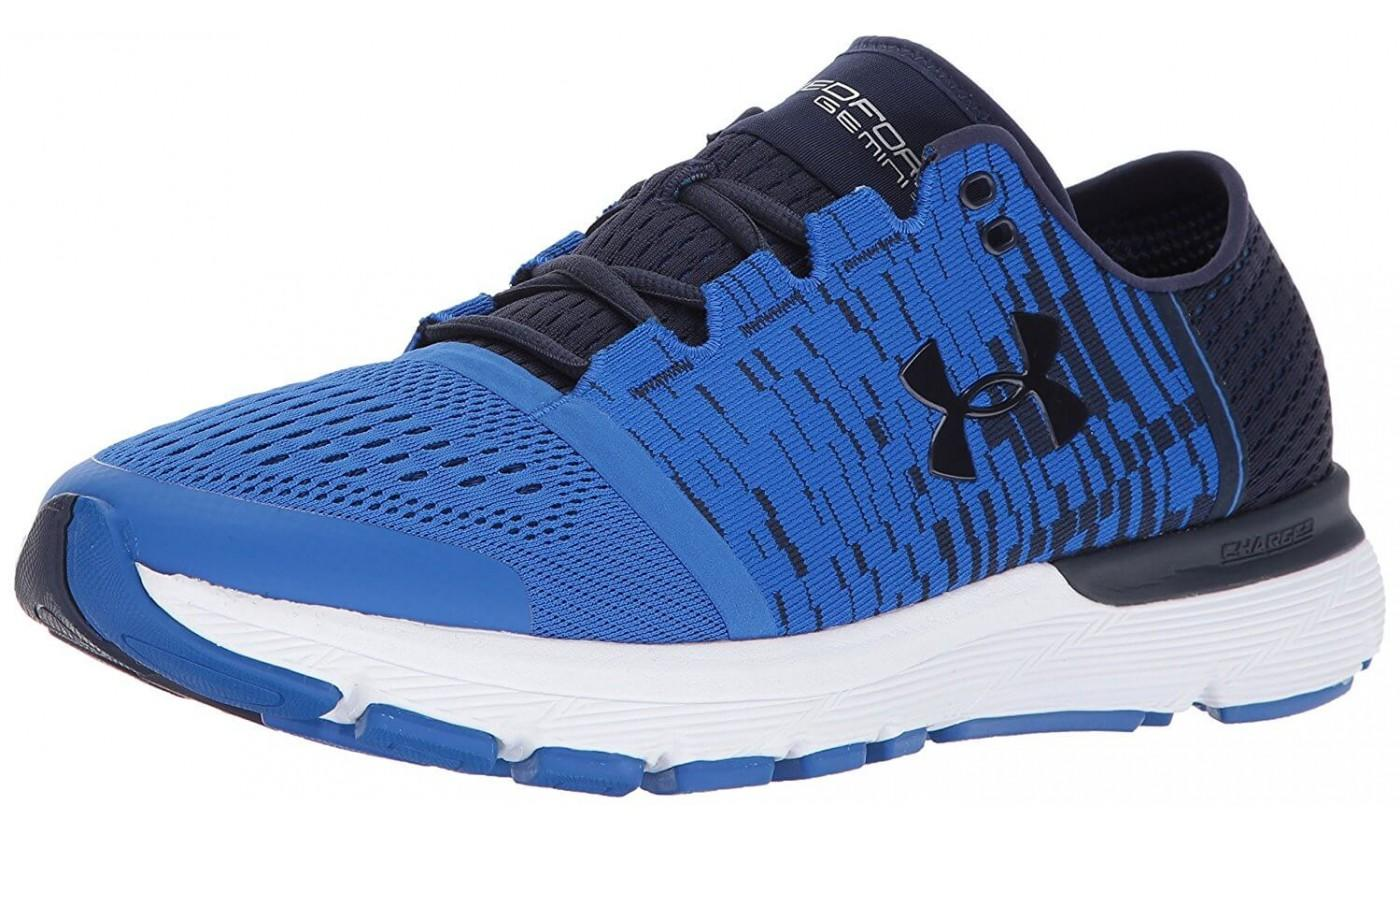 The newest model of the Gemini is lightweight and is a perfect distance companion.